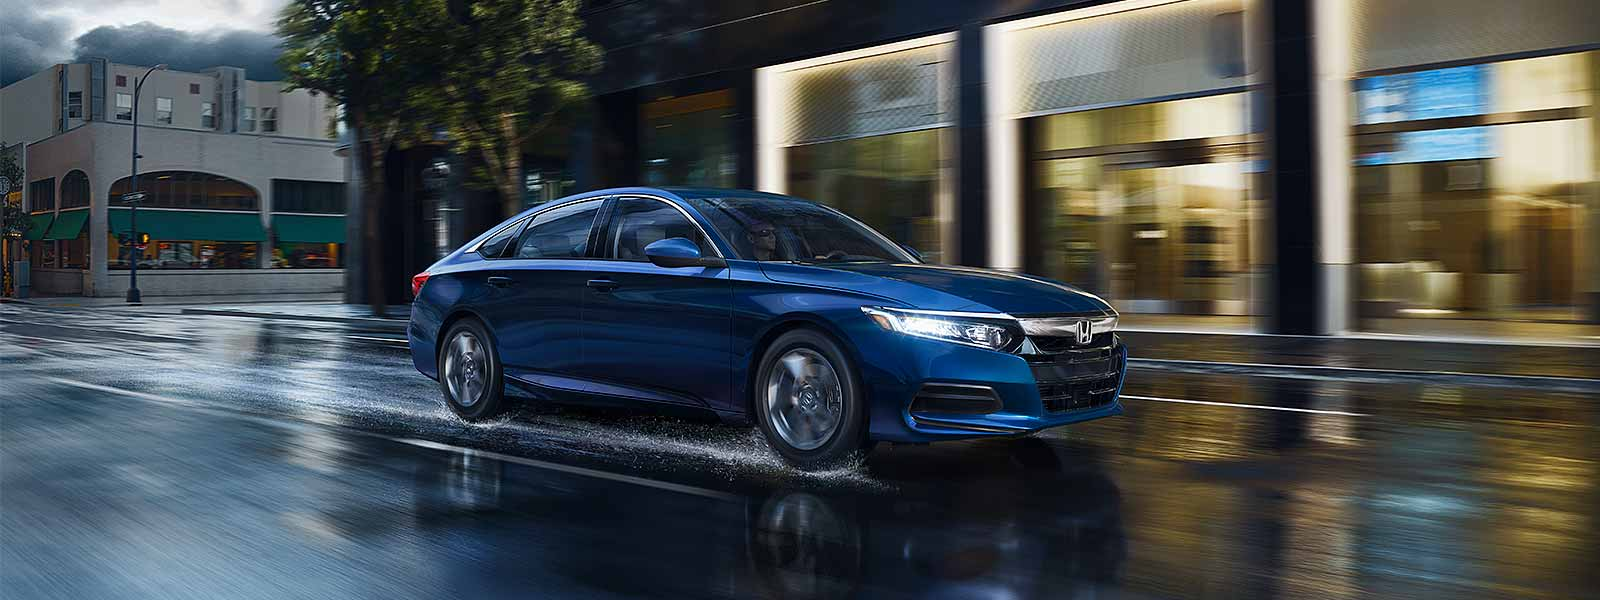 Honda Accord Chciago Deals